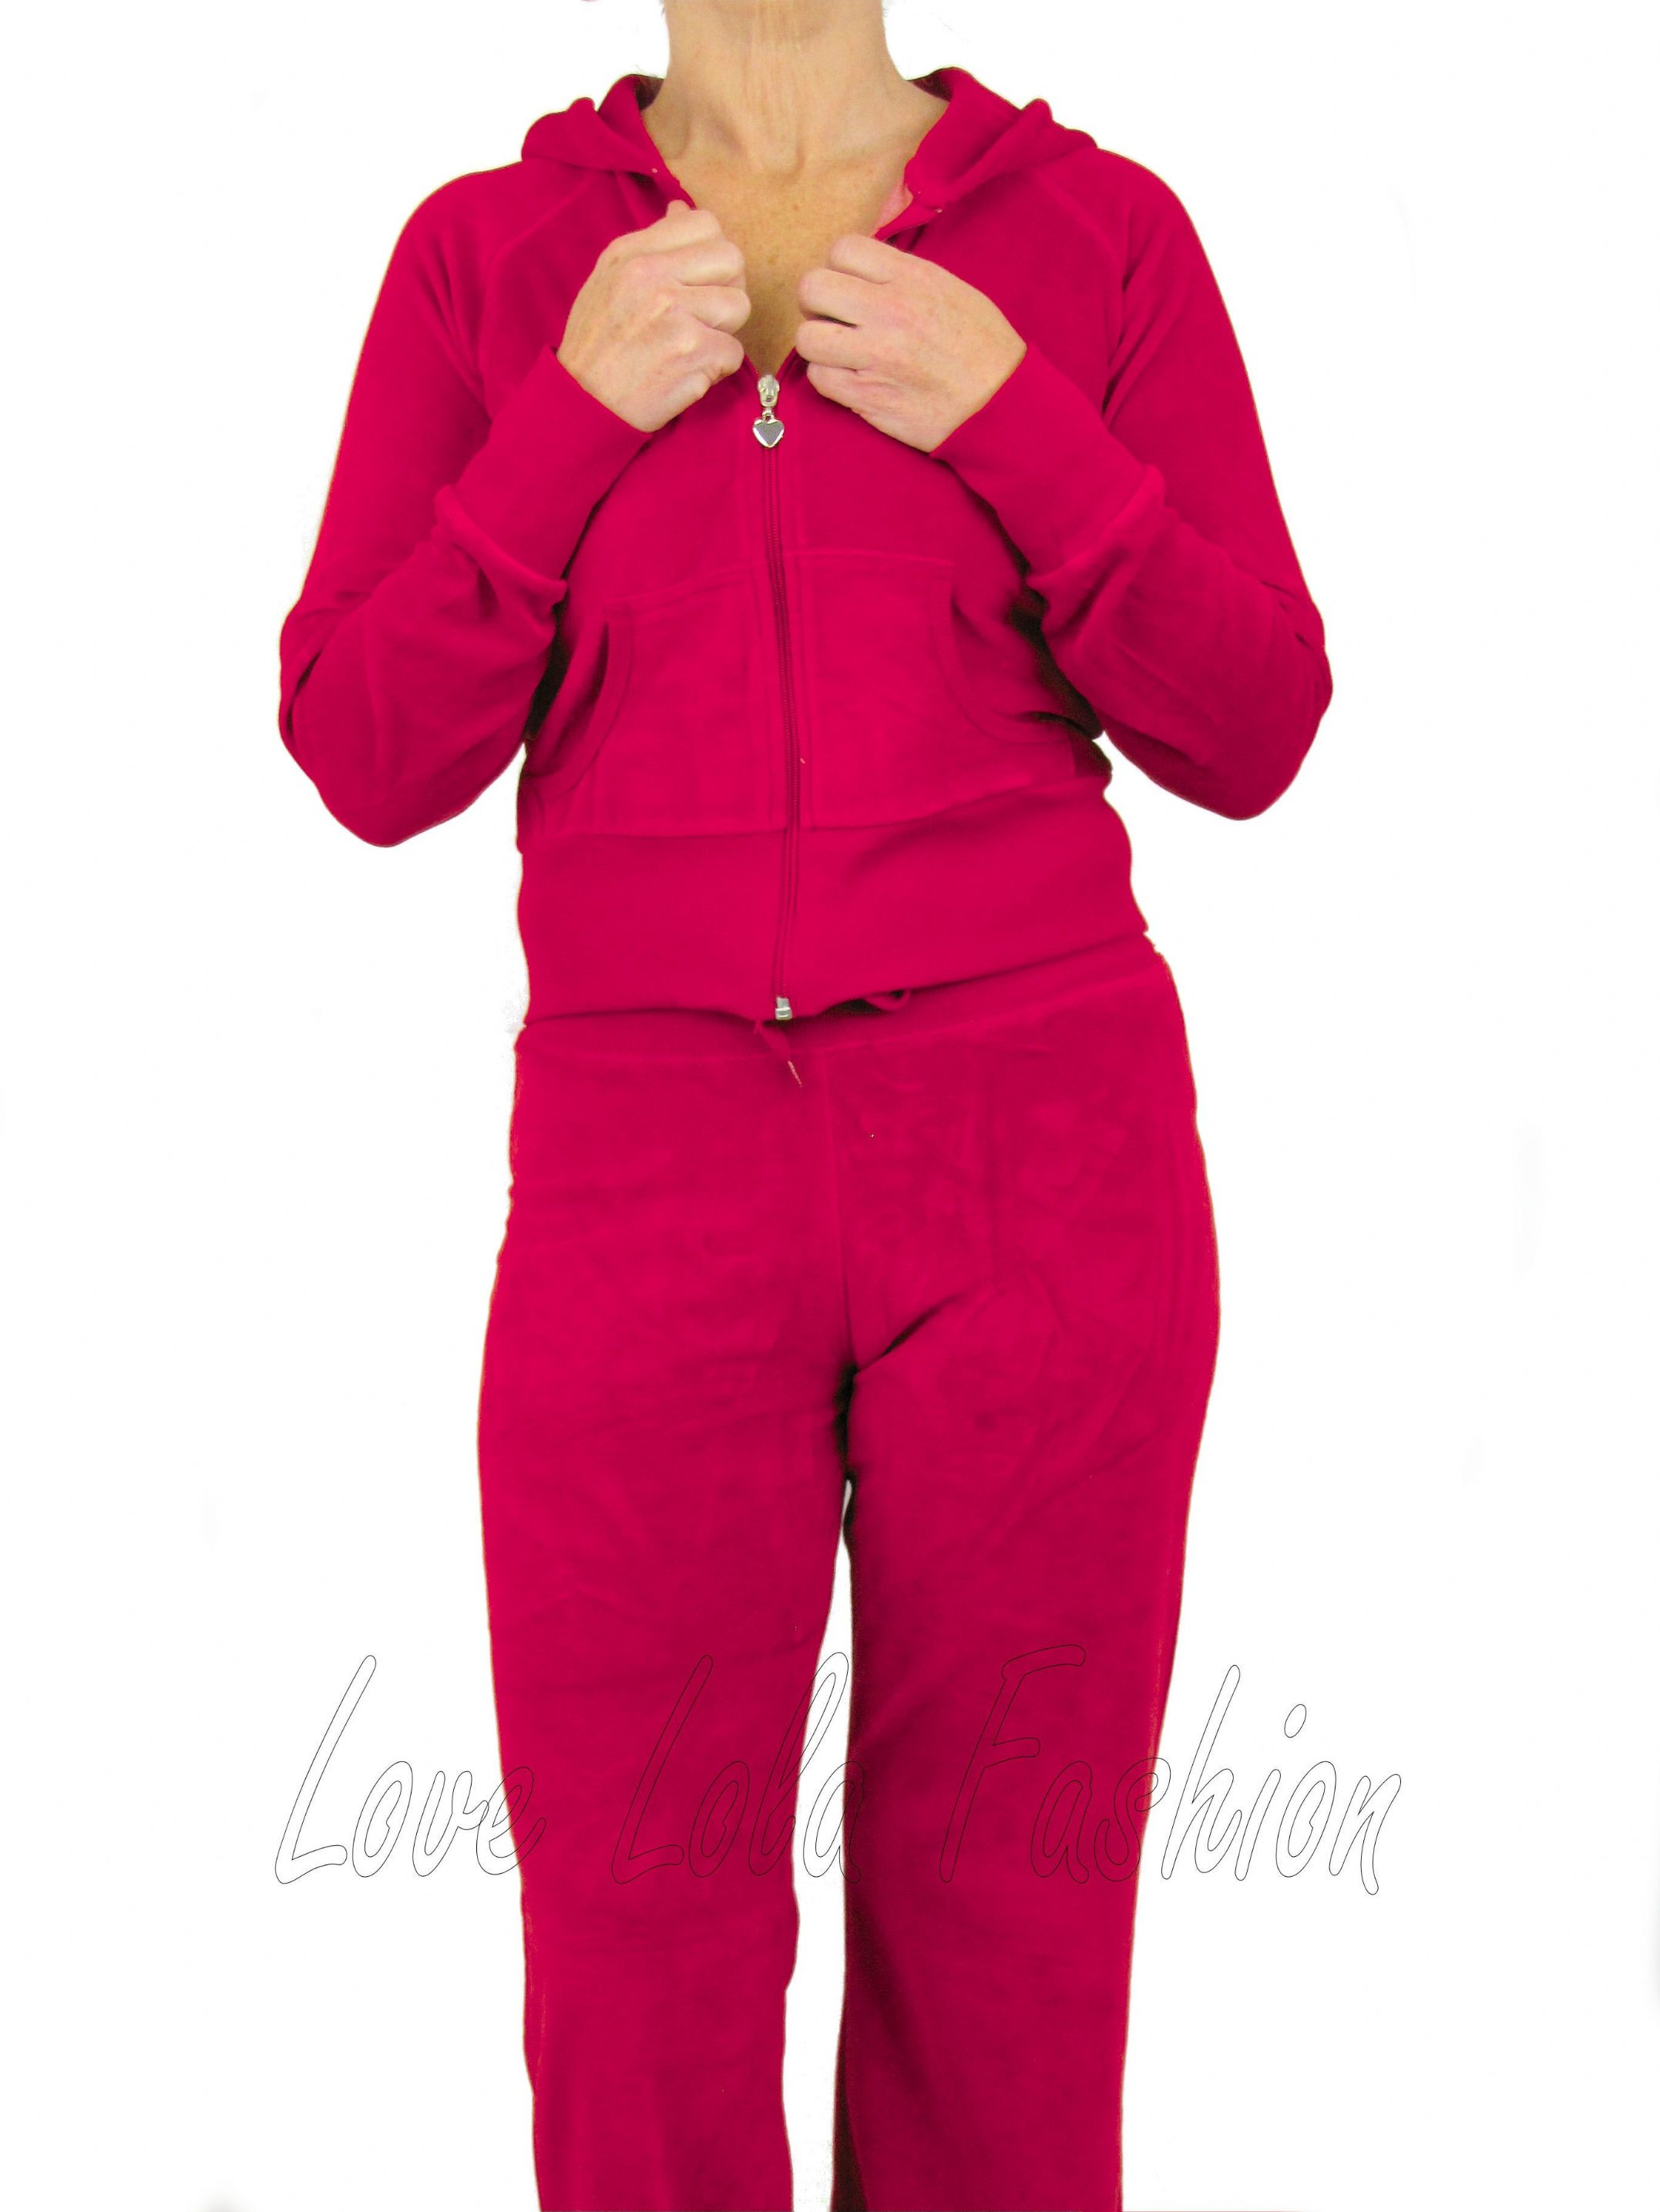 Love Lola Womens Velour Tracksuits Raspberry